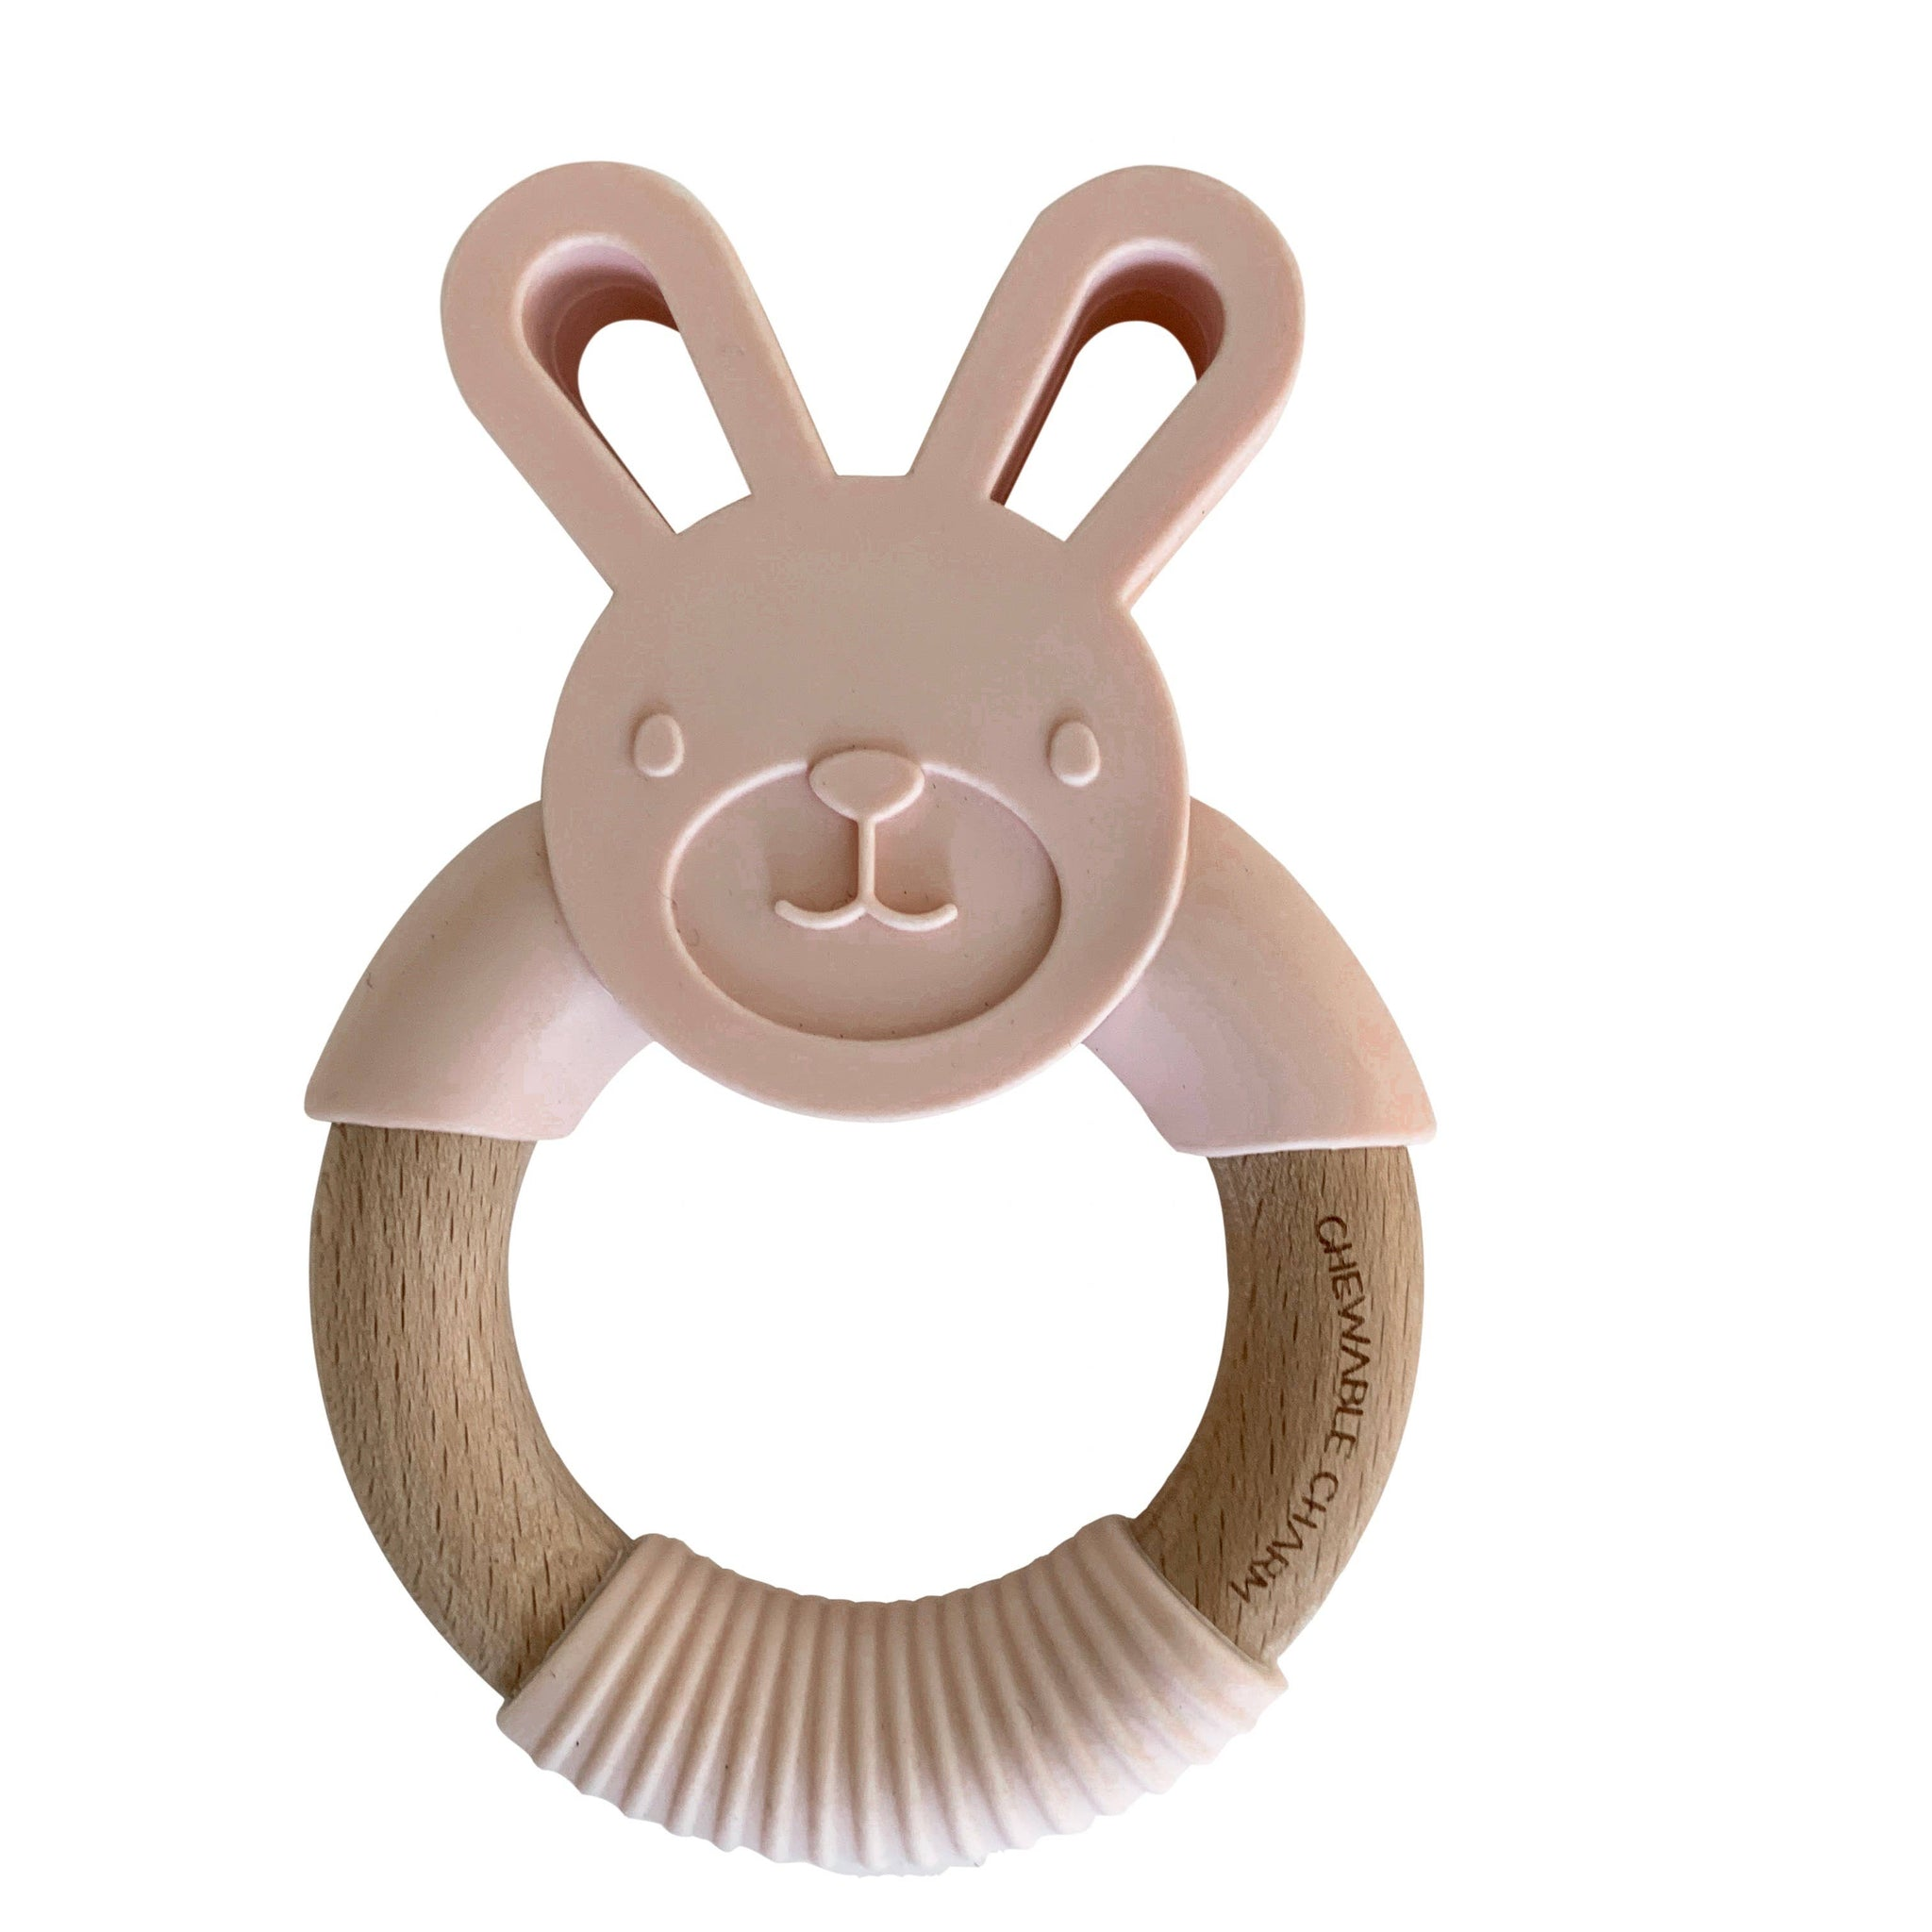 Bunny Silicone + Wood Teether (Ballet Slippers)